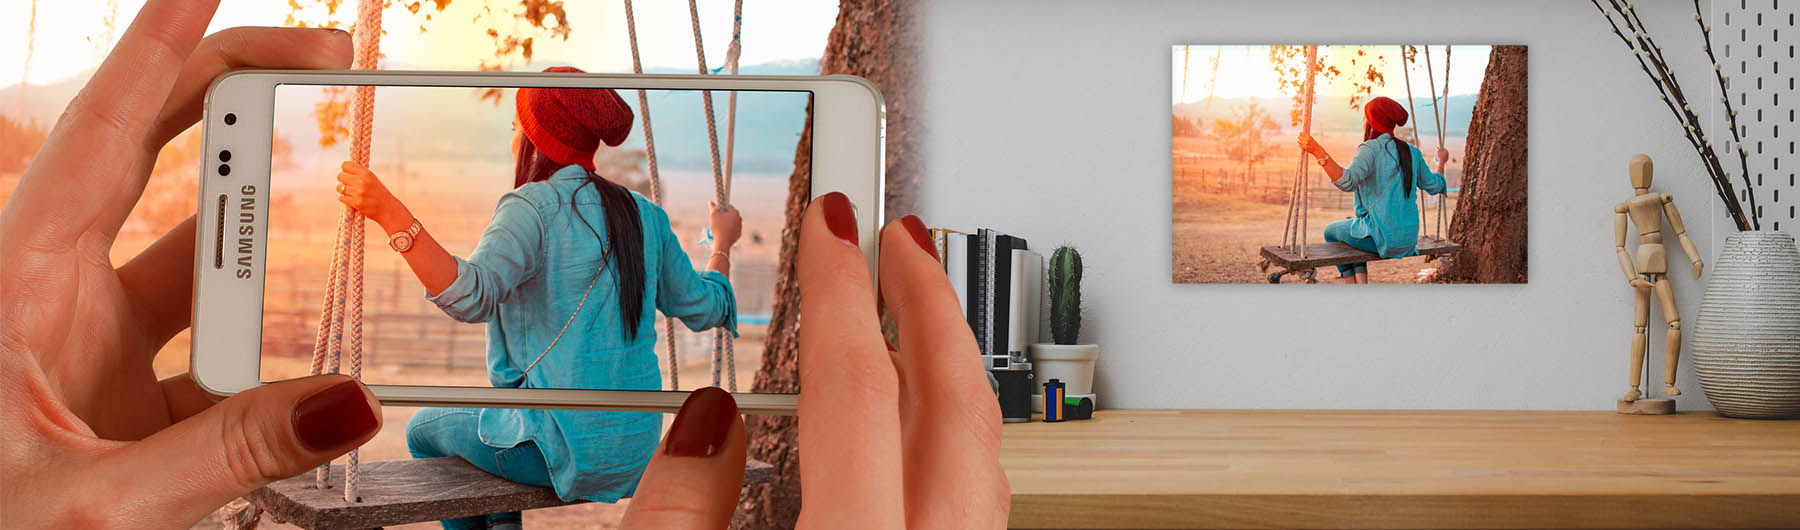 From your Smartphone to the wall on glass.